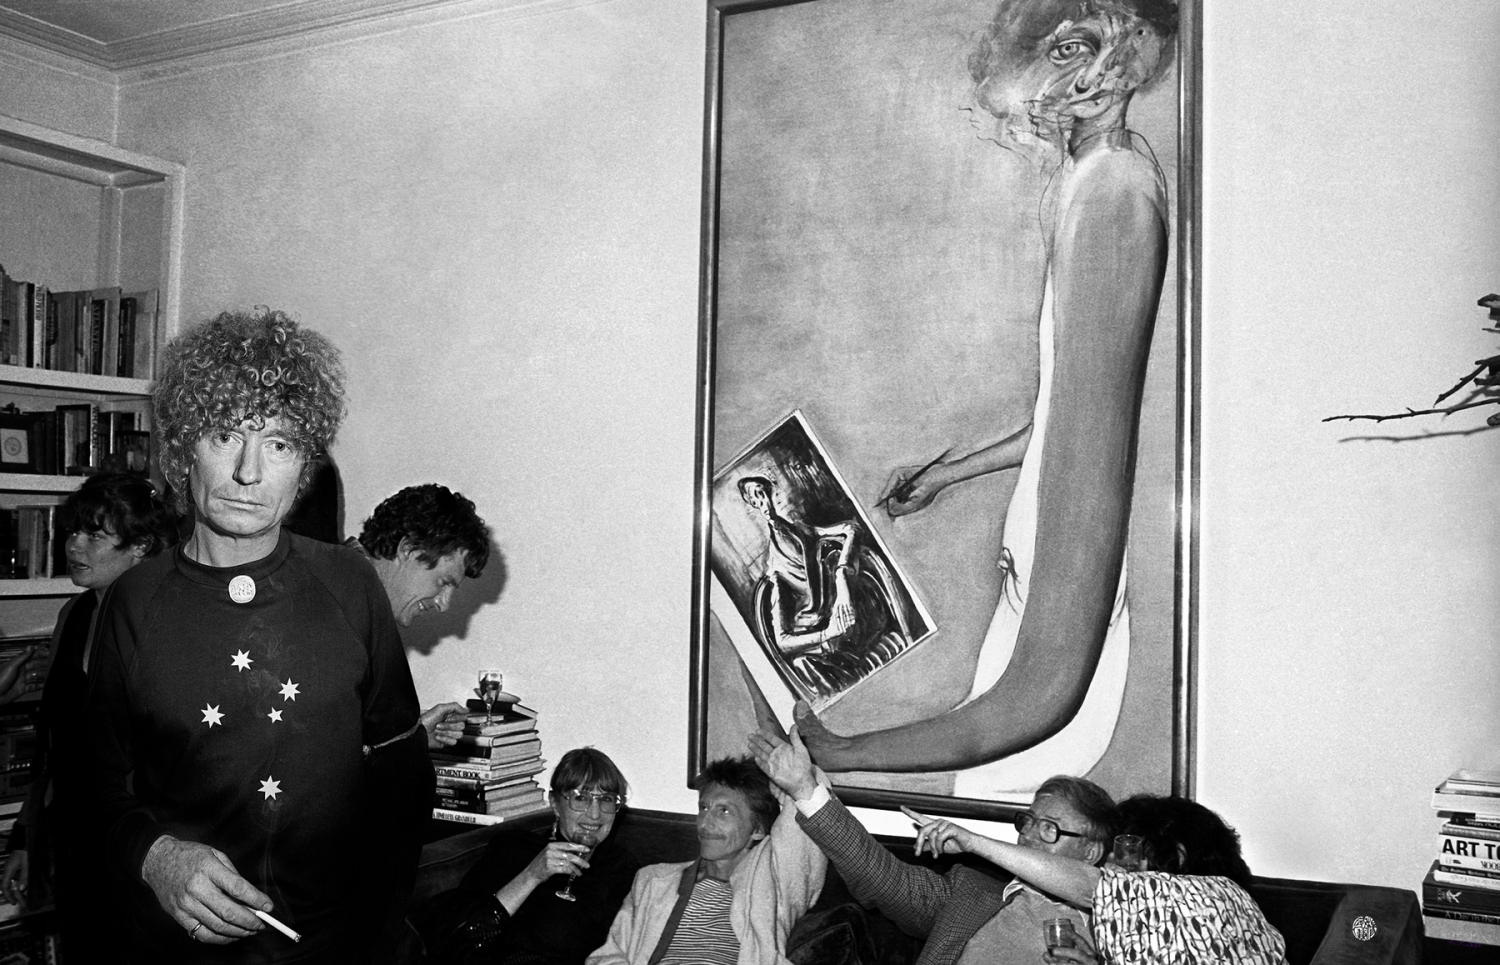 Group on couch with large artwork on wall, behind Brett Whiteley, who is standing looking at camera.